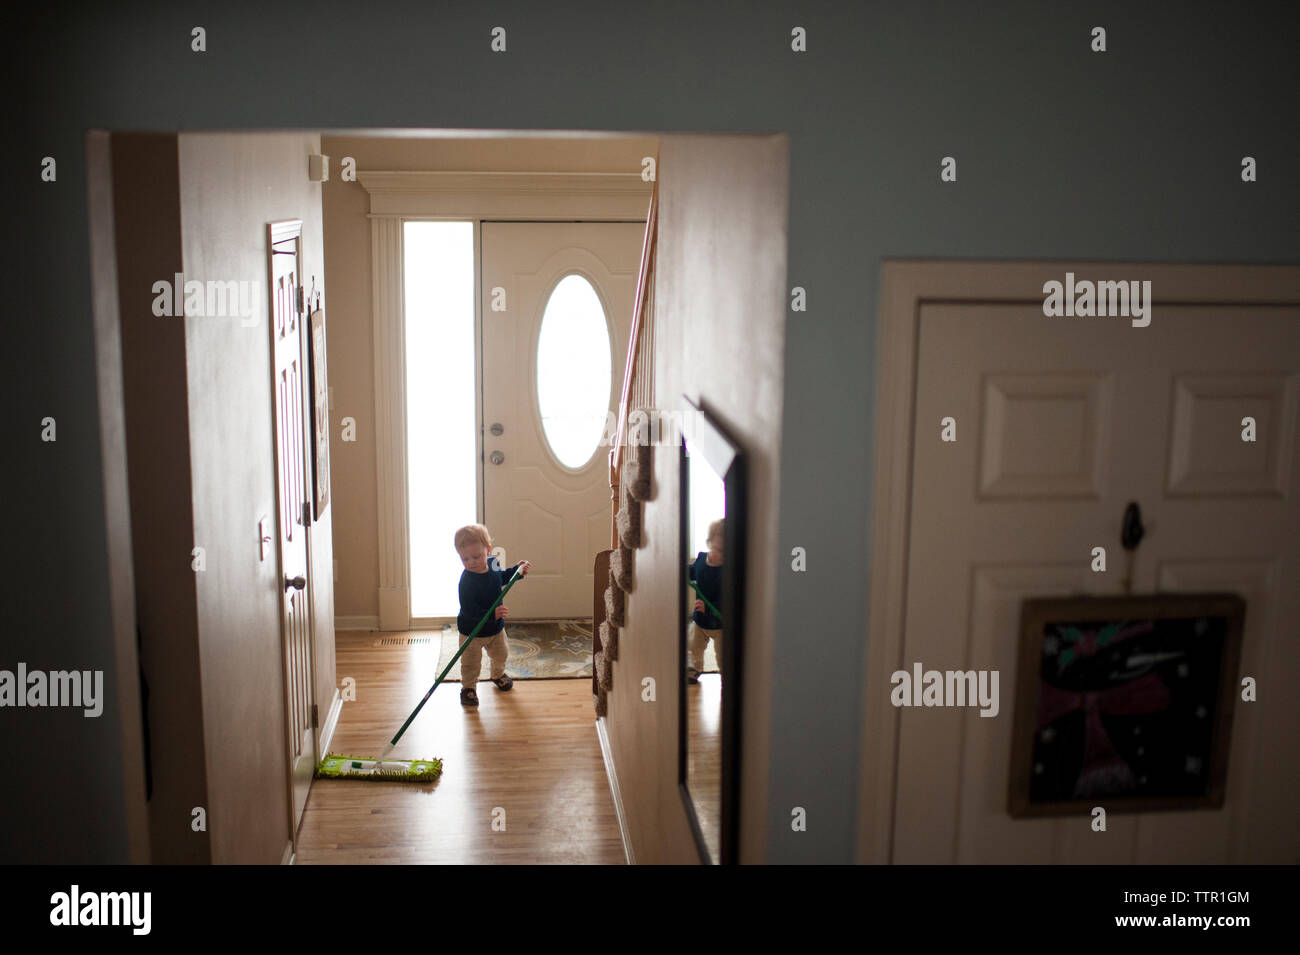 Full length of baby boy wiping hardwood floor with mop at home - Stock Image